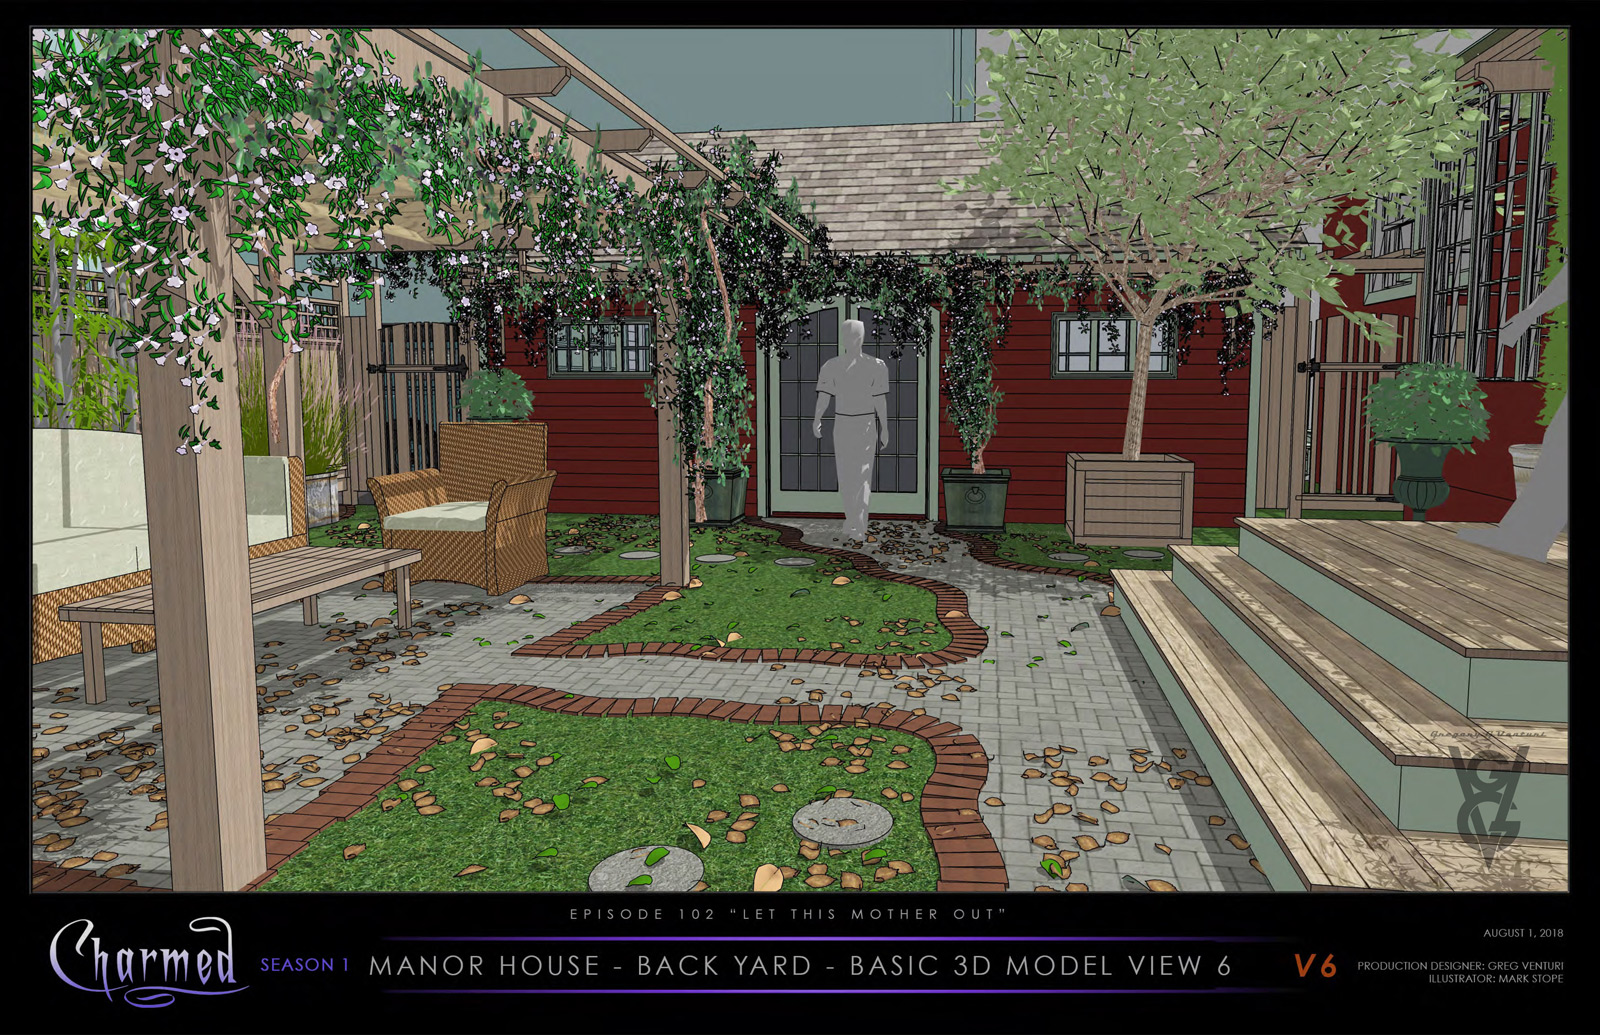 CHARMED: S1 - VERA MANOR - BACK YARD - 3D MODEL VIEW